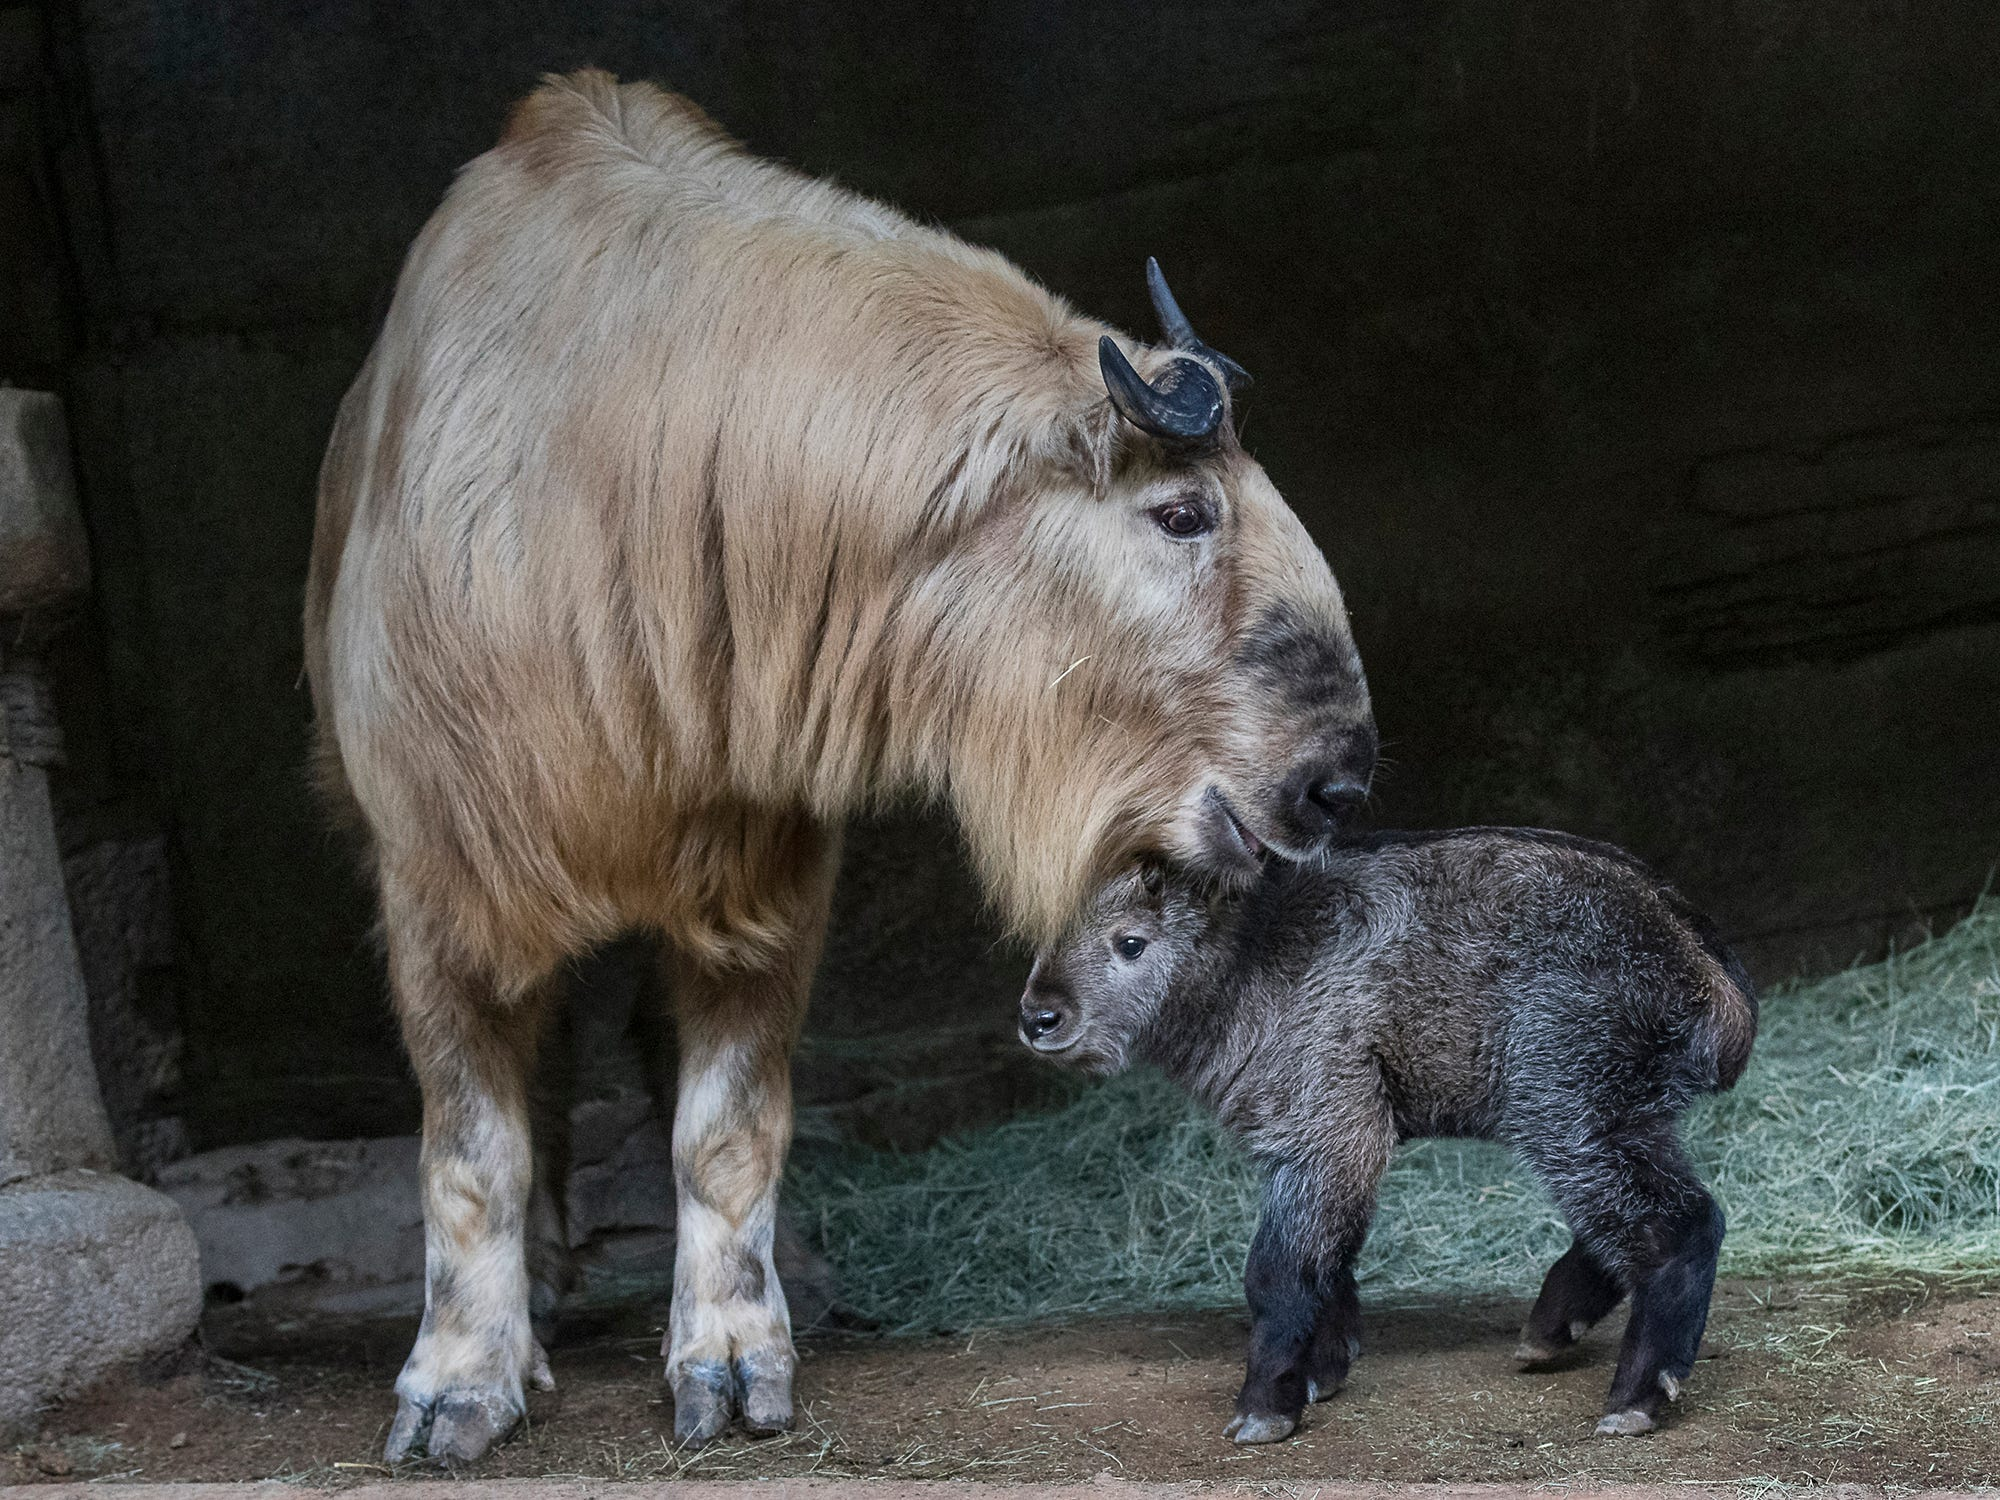 The baby takin with its mama at the San Diego Zoo.